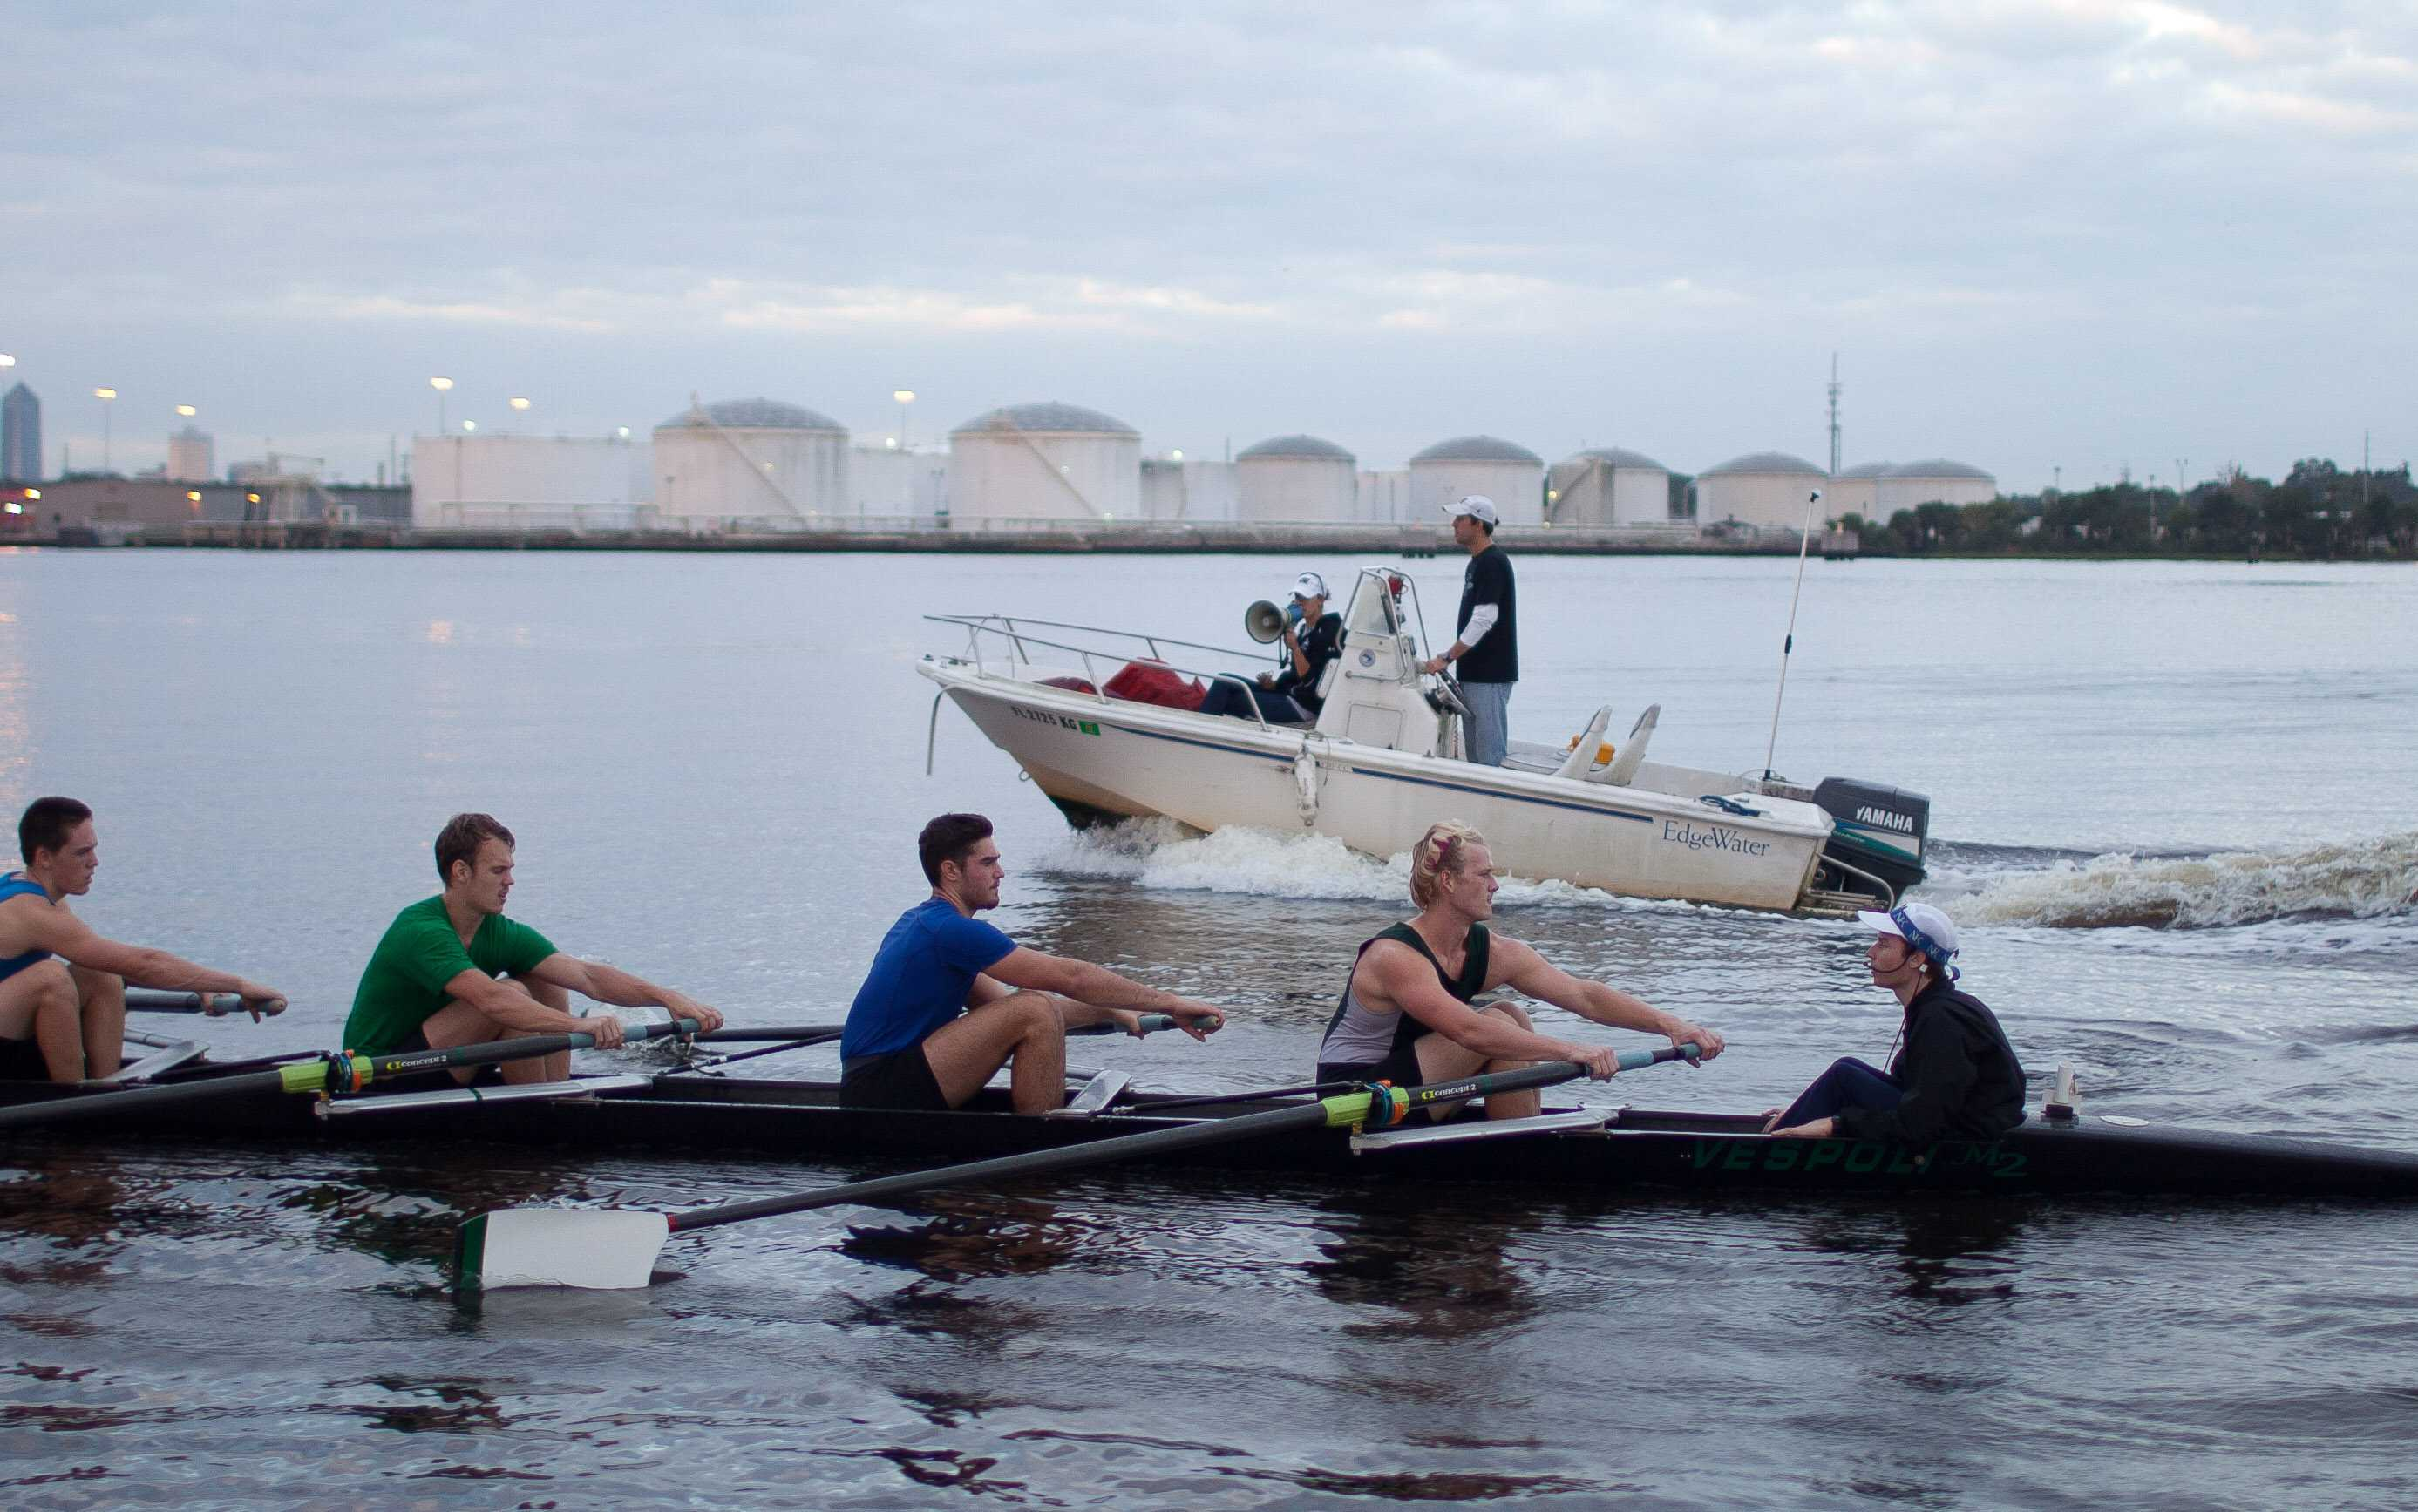 At an early morning practice Oct. 4, Coach Marci Robles gives direction from a megaphone as the team rows past her and Assistant Coach Rich Kelley in the coaching launch.